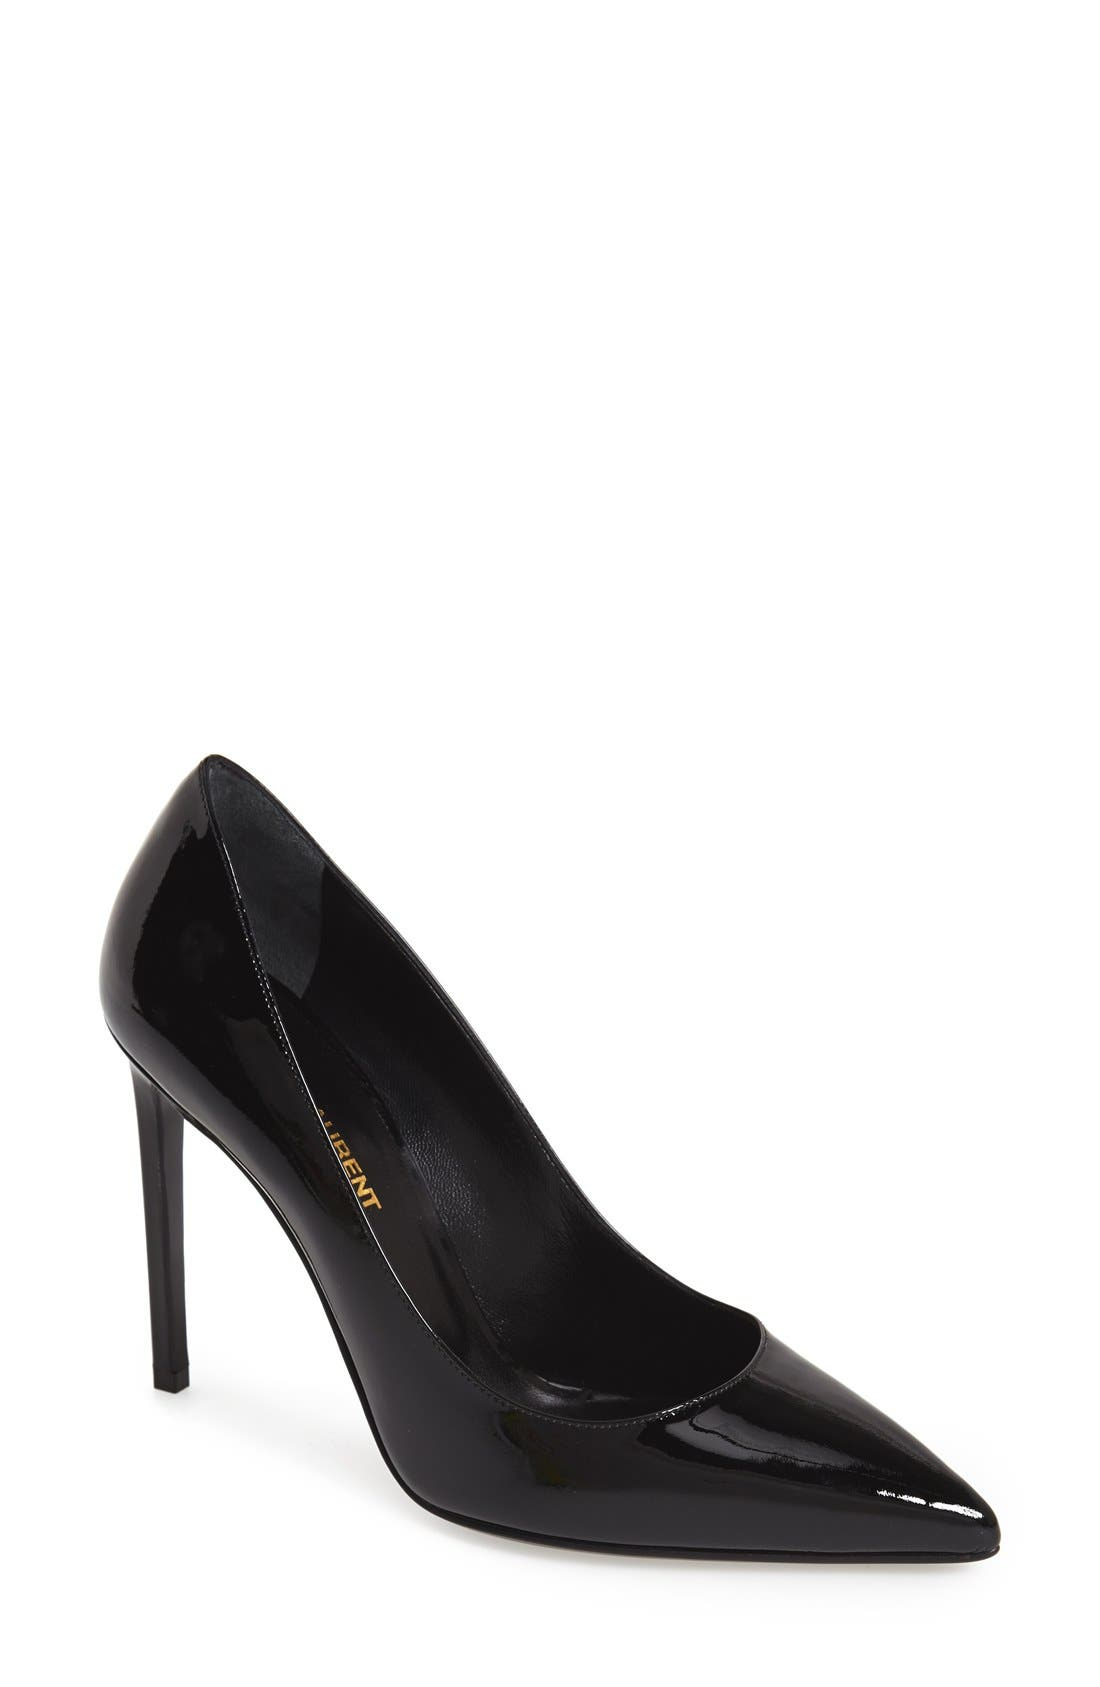 'Paris Skinny' Pointy Toe Pump,                         Main,                         color, Black